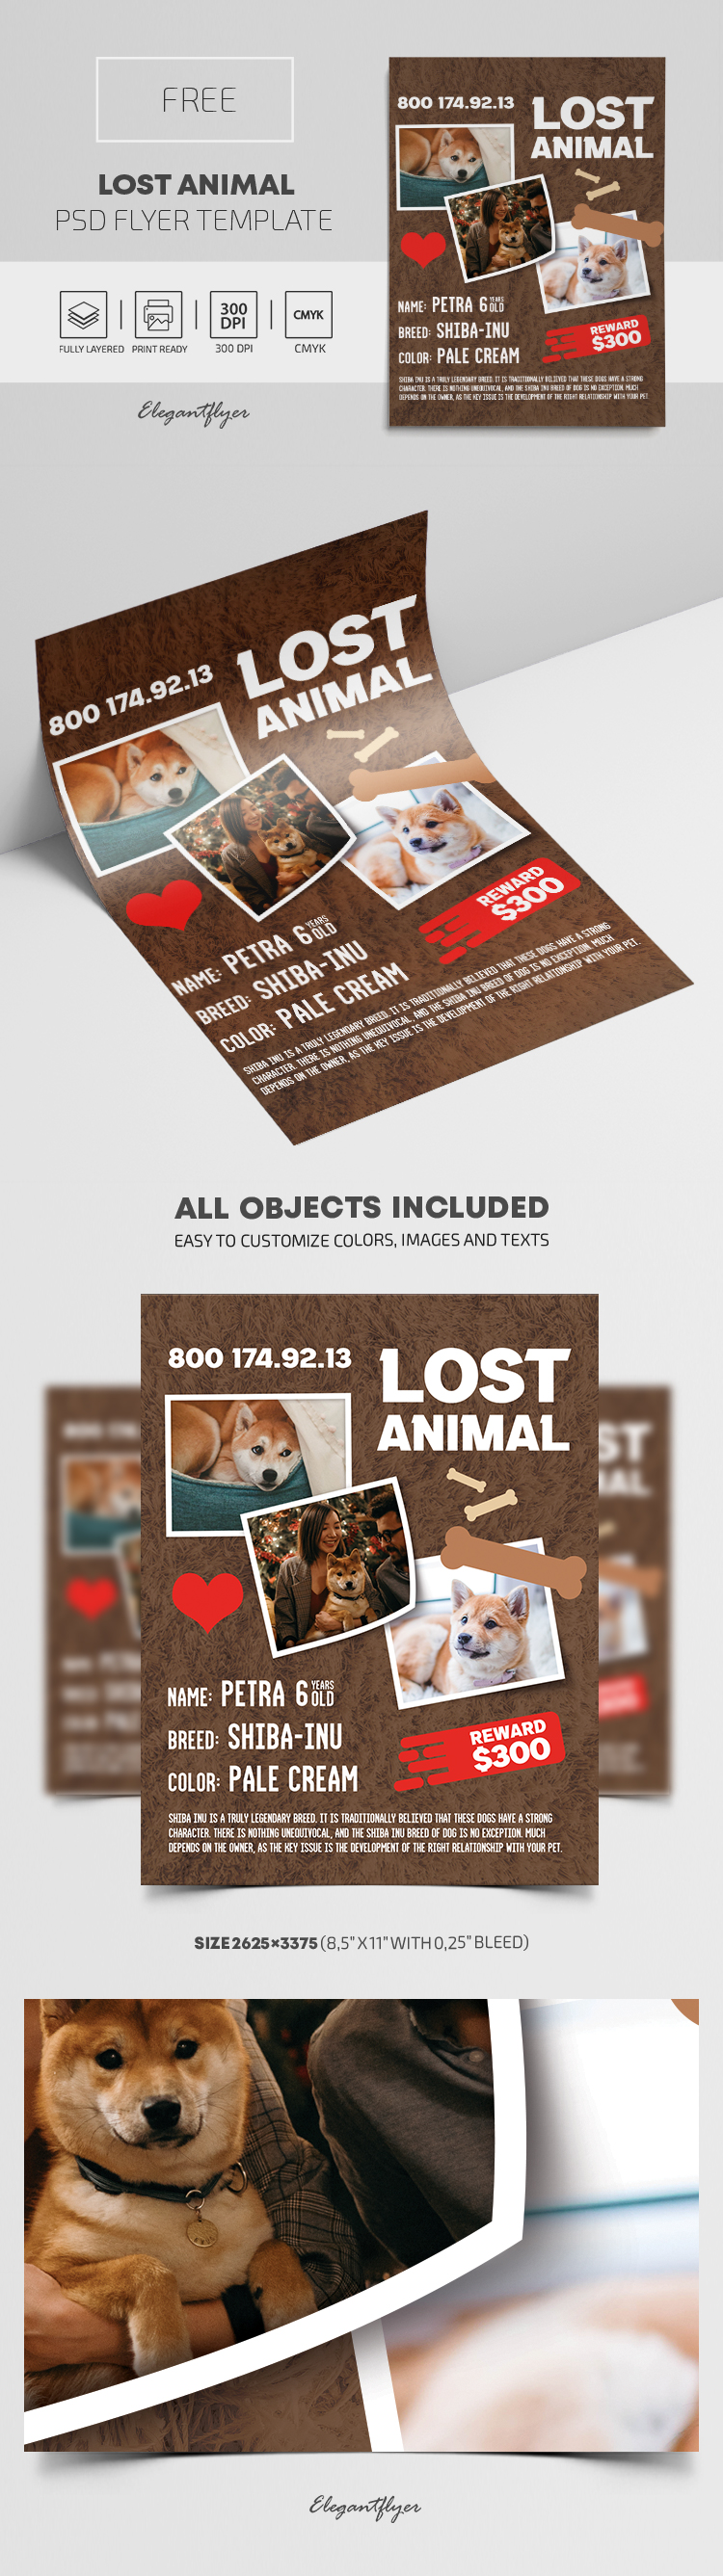 Lost Animal – Free PSD Flyer Template